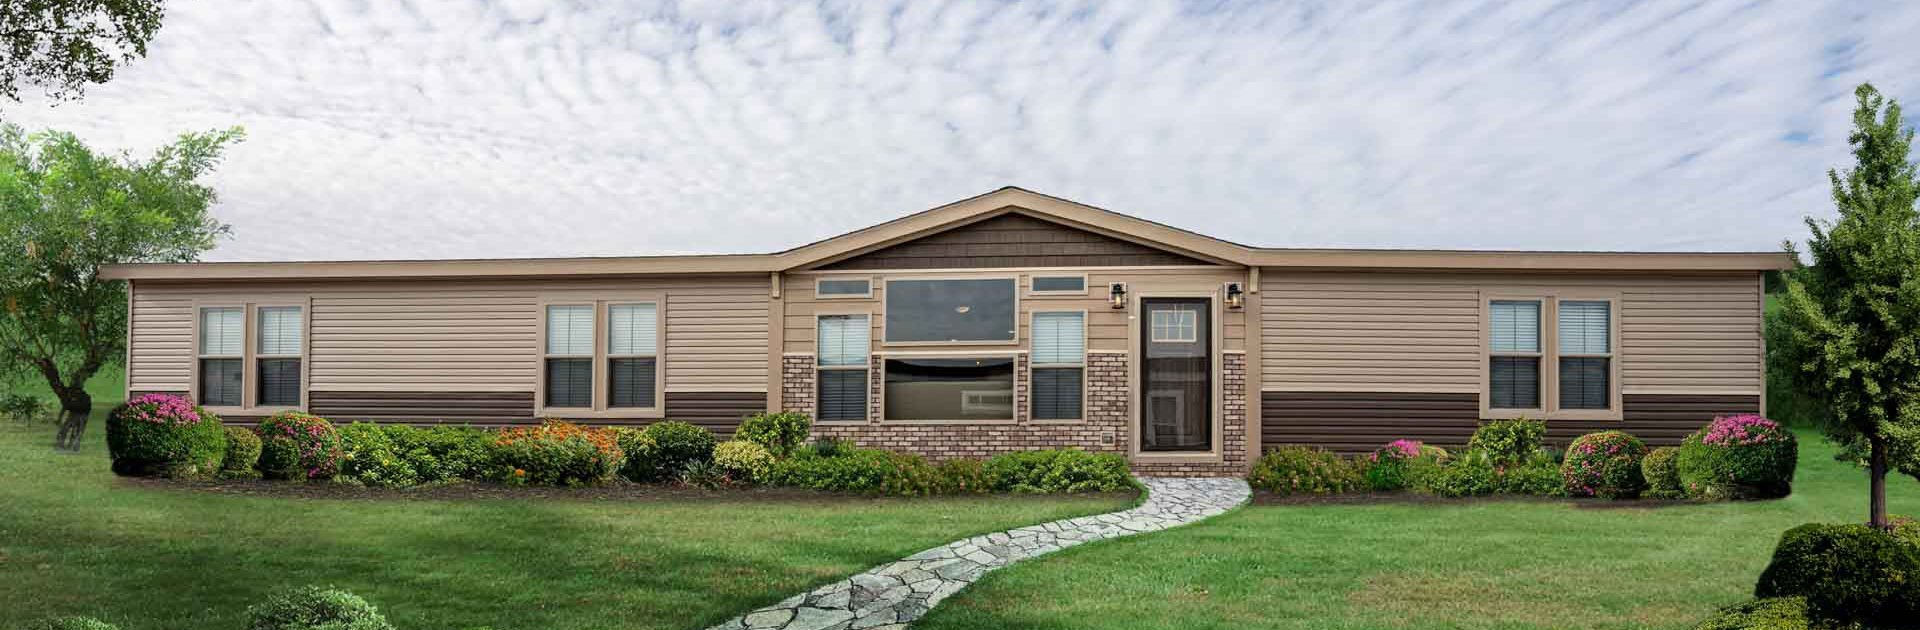 front view of the Bailey house model made by pratt homes tyler texas